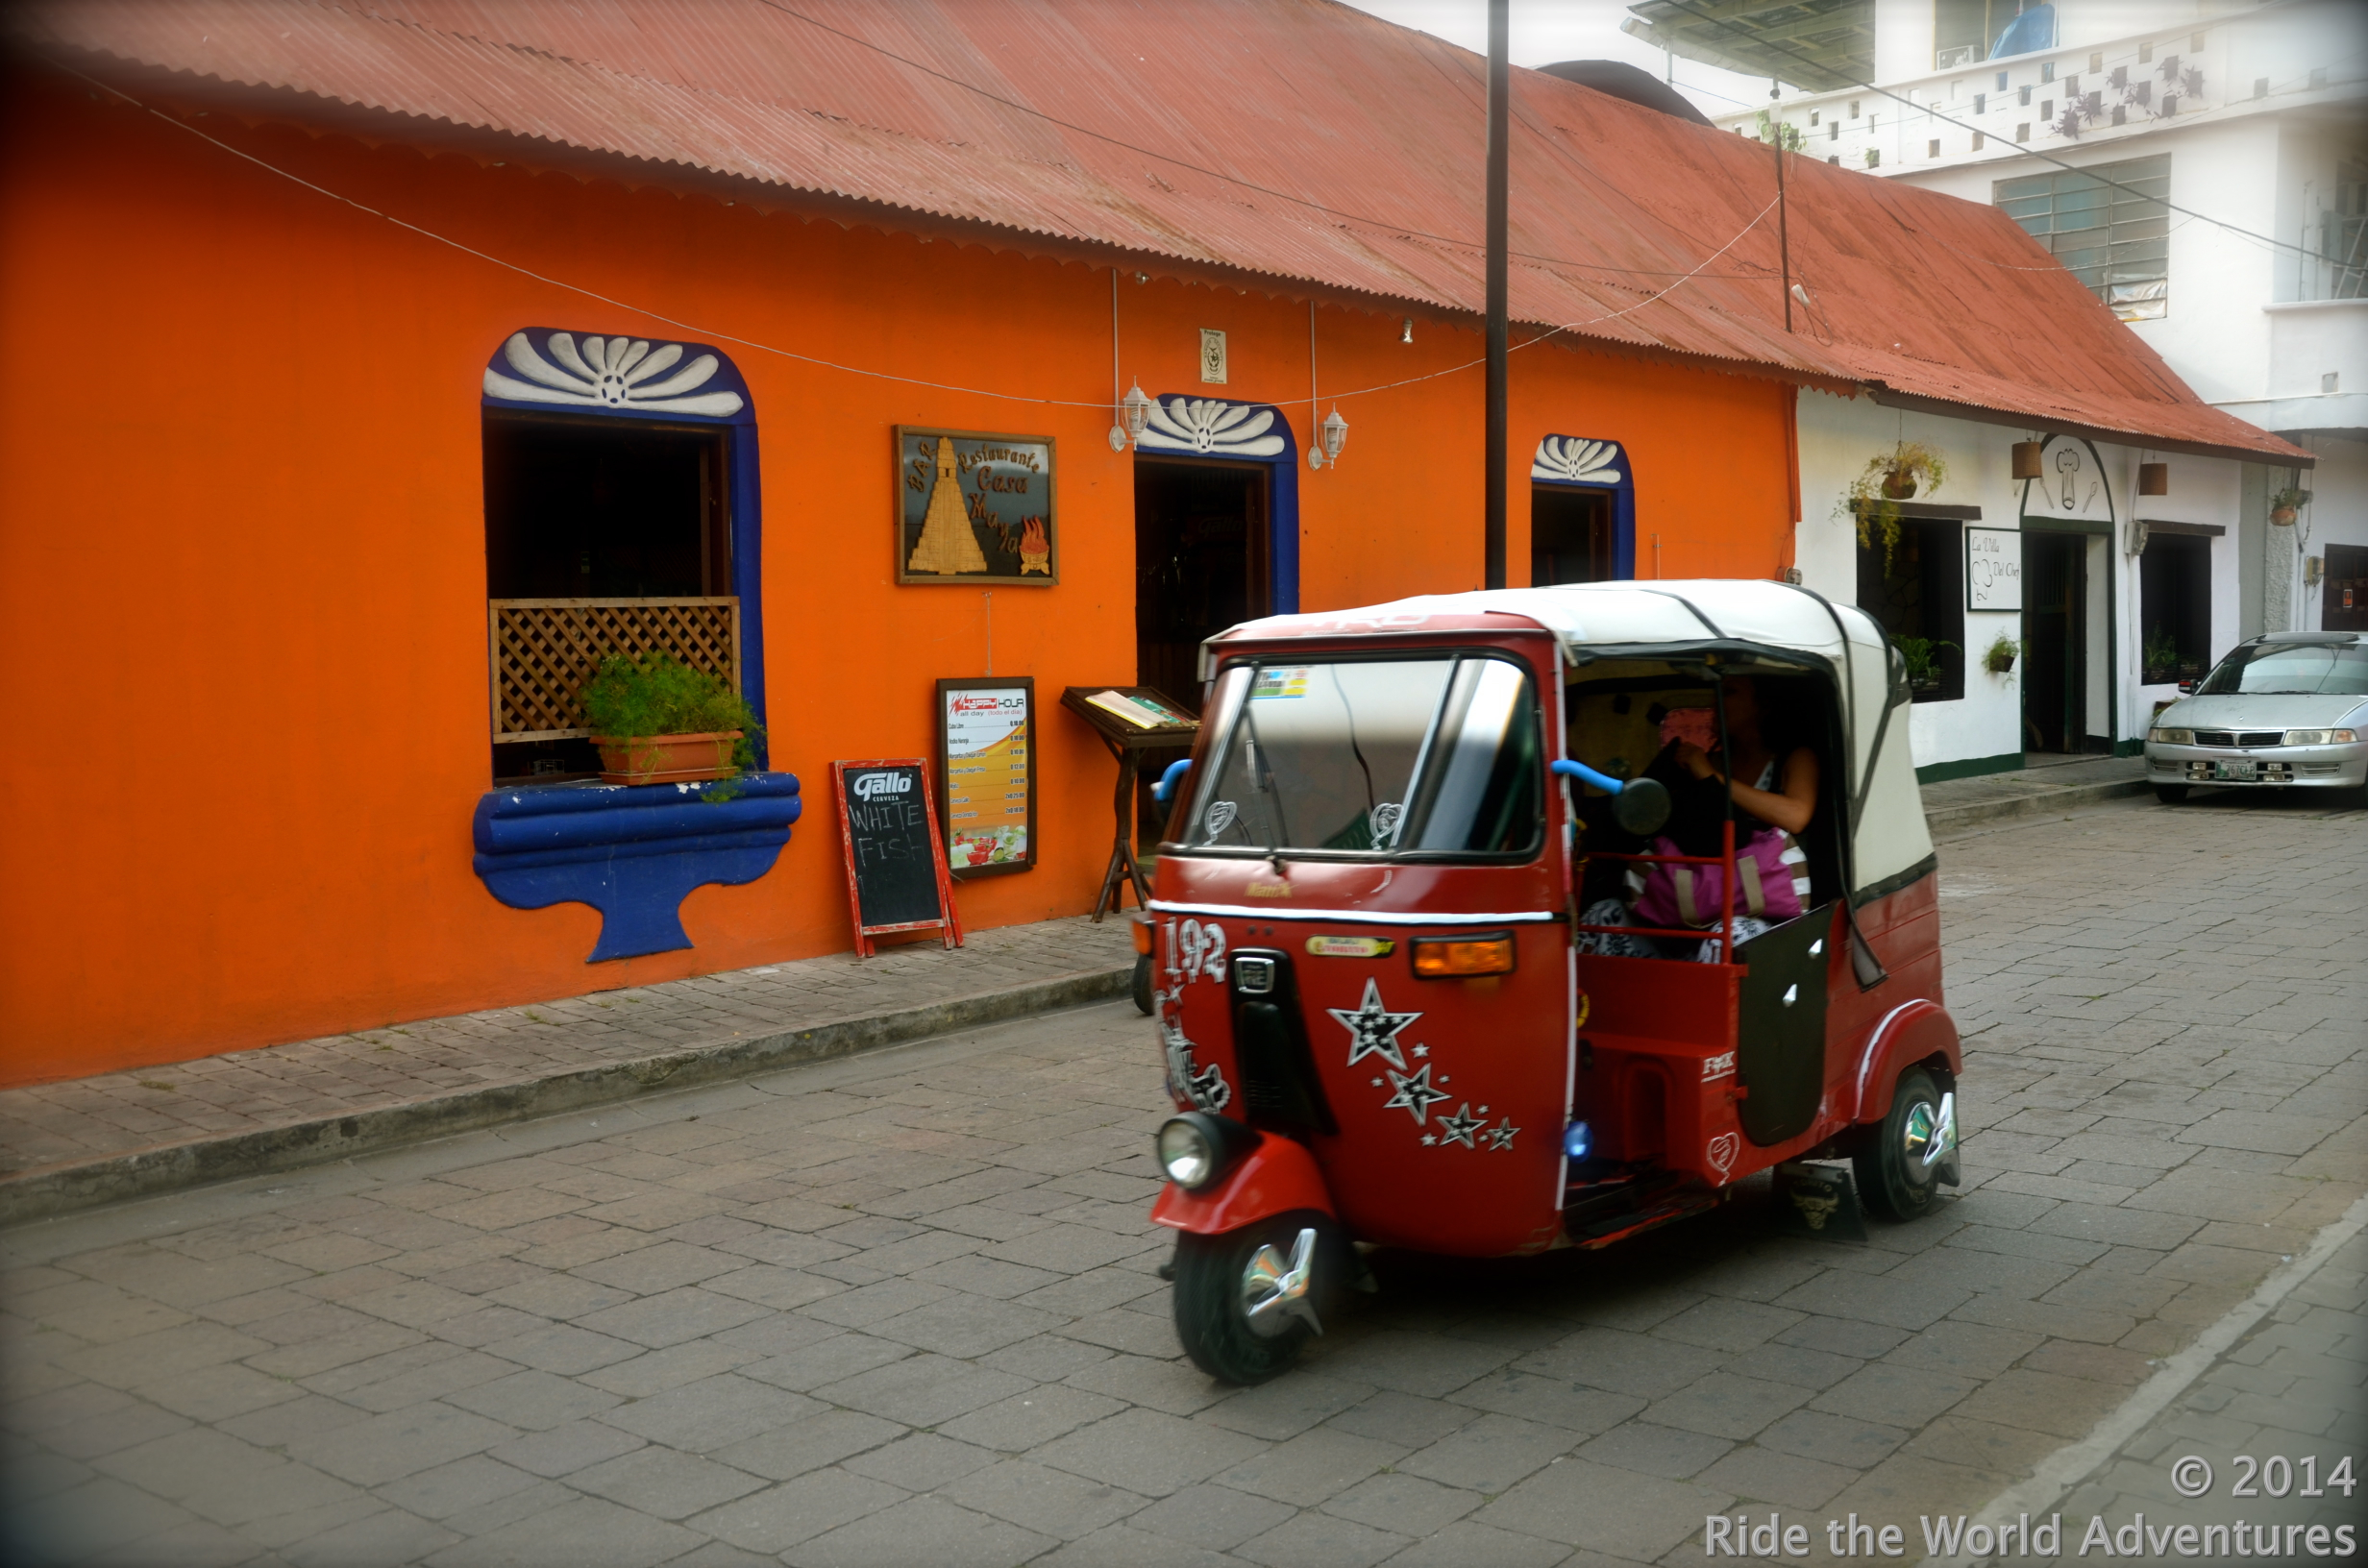 Tuk Tuk's with character!